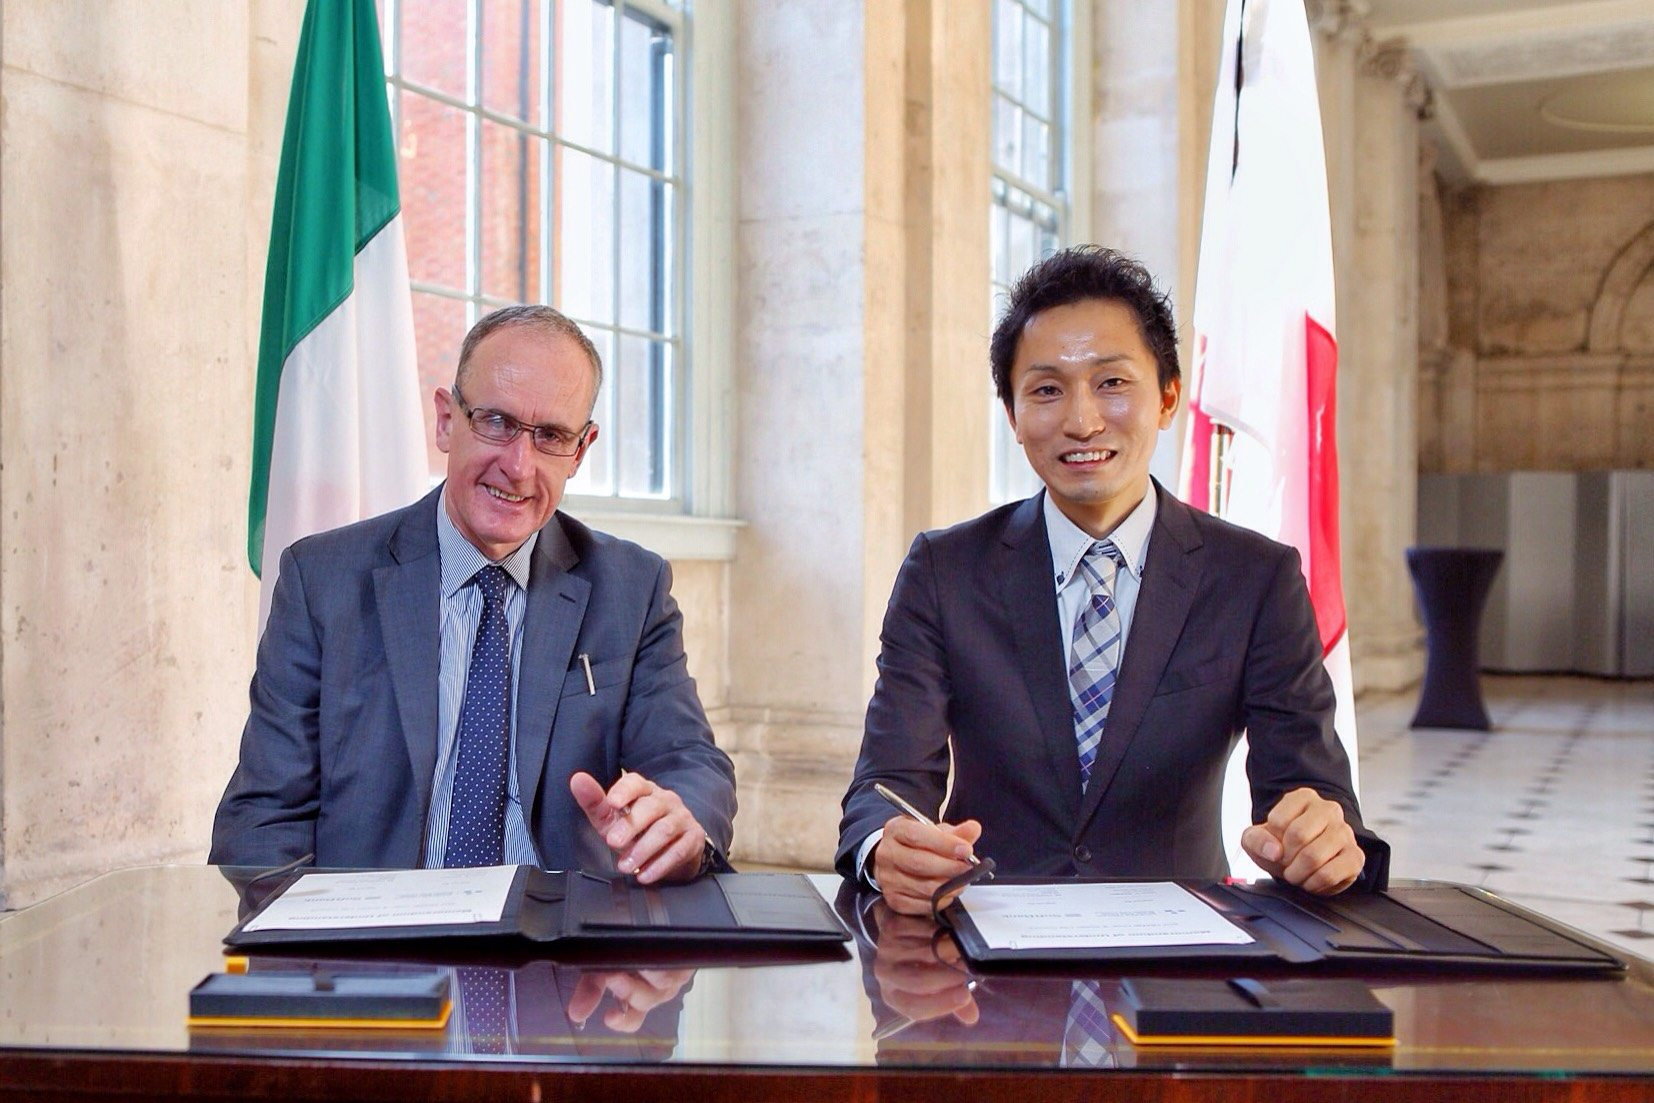 Dublin City Council chief executive Owen Keegan and Hidebumi Kitahara, vice president of SoftBank's global business strategy division.